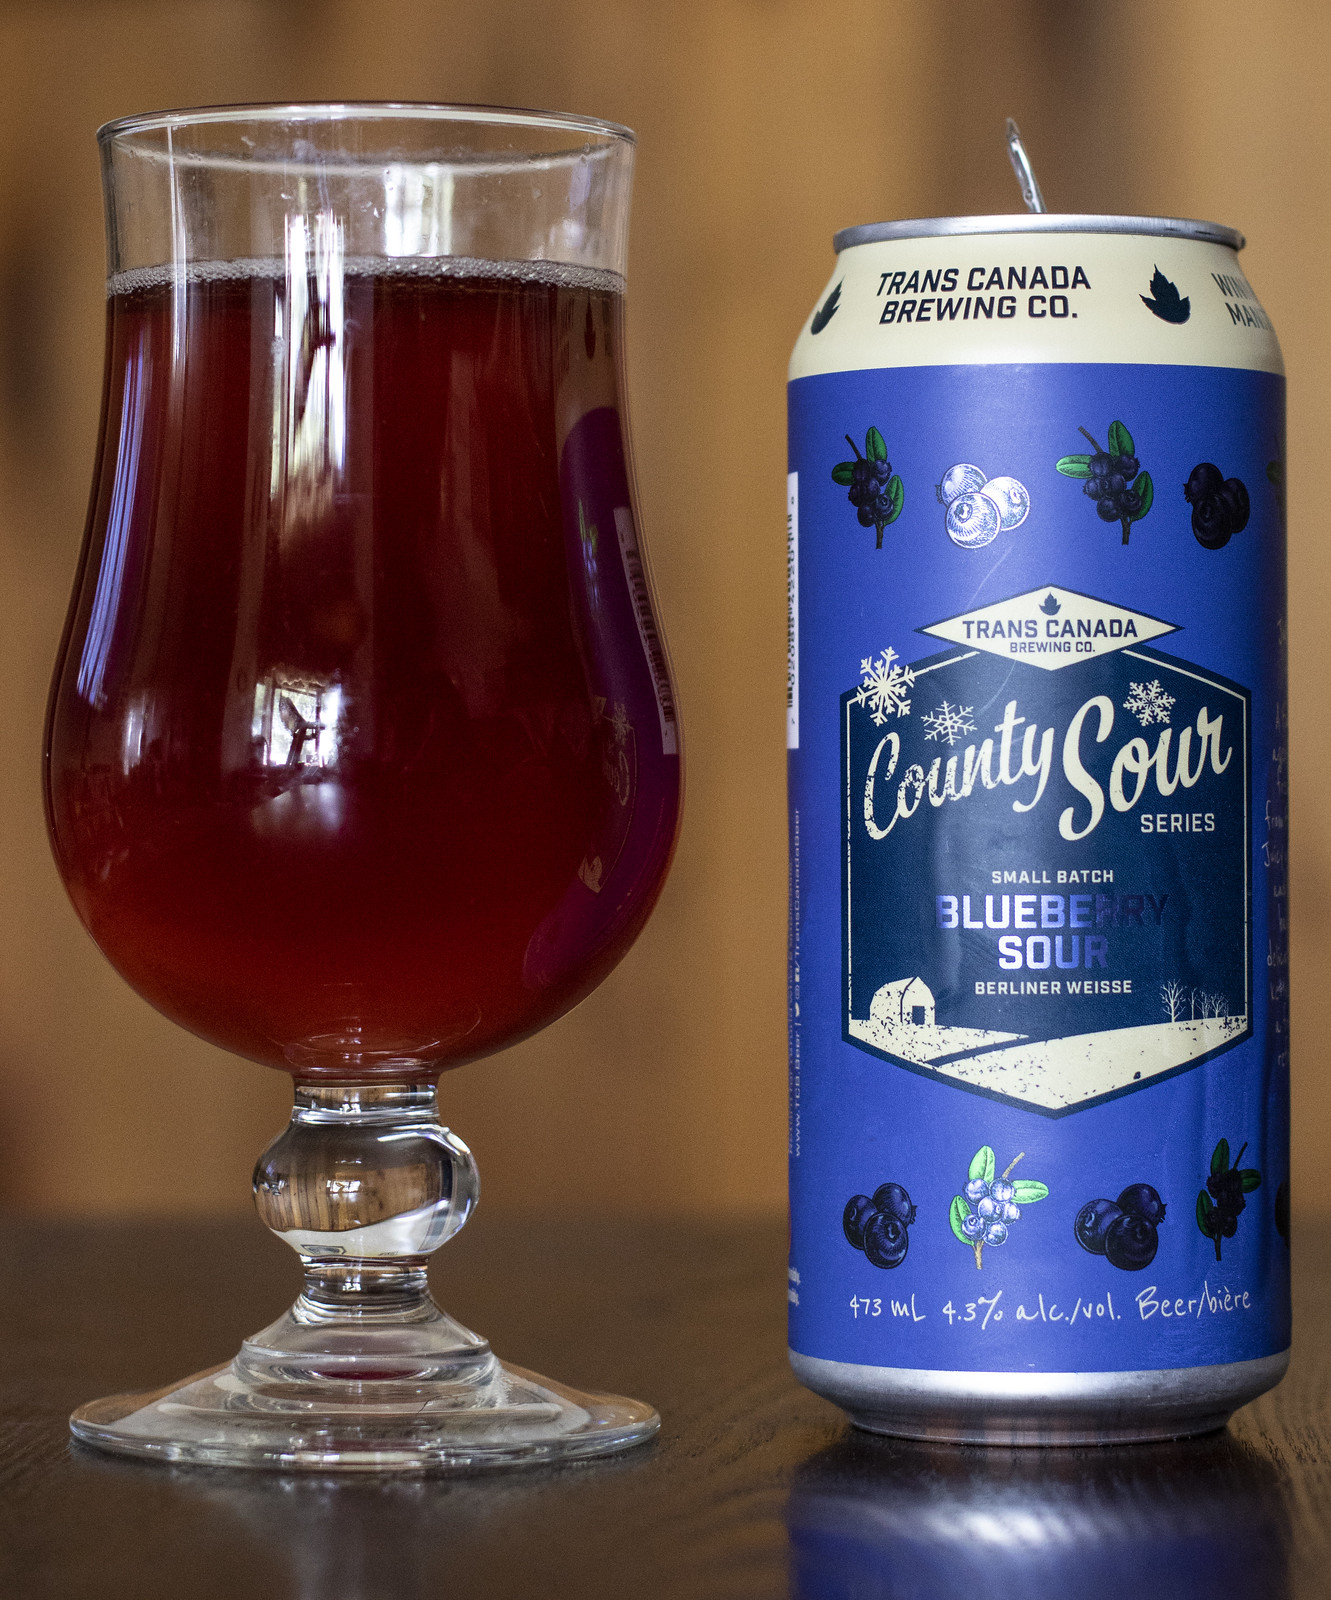 Trans Canada Blueberry Sour Berliner Weisse